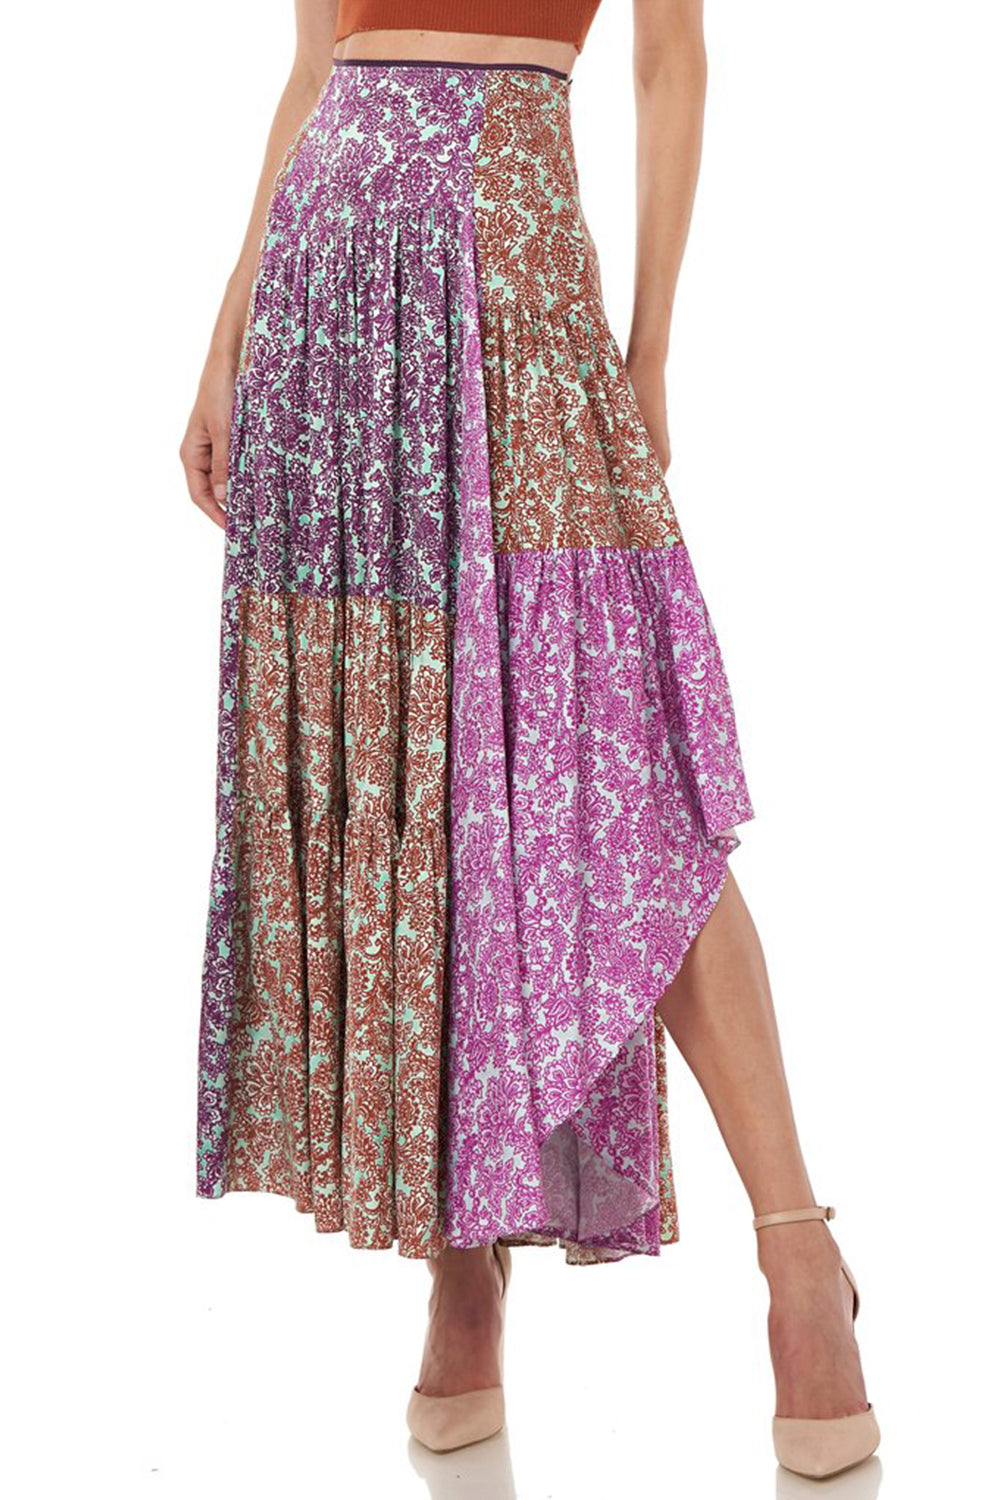 Scout Skirt in Multi Purple Print